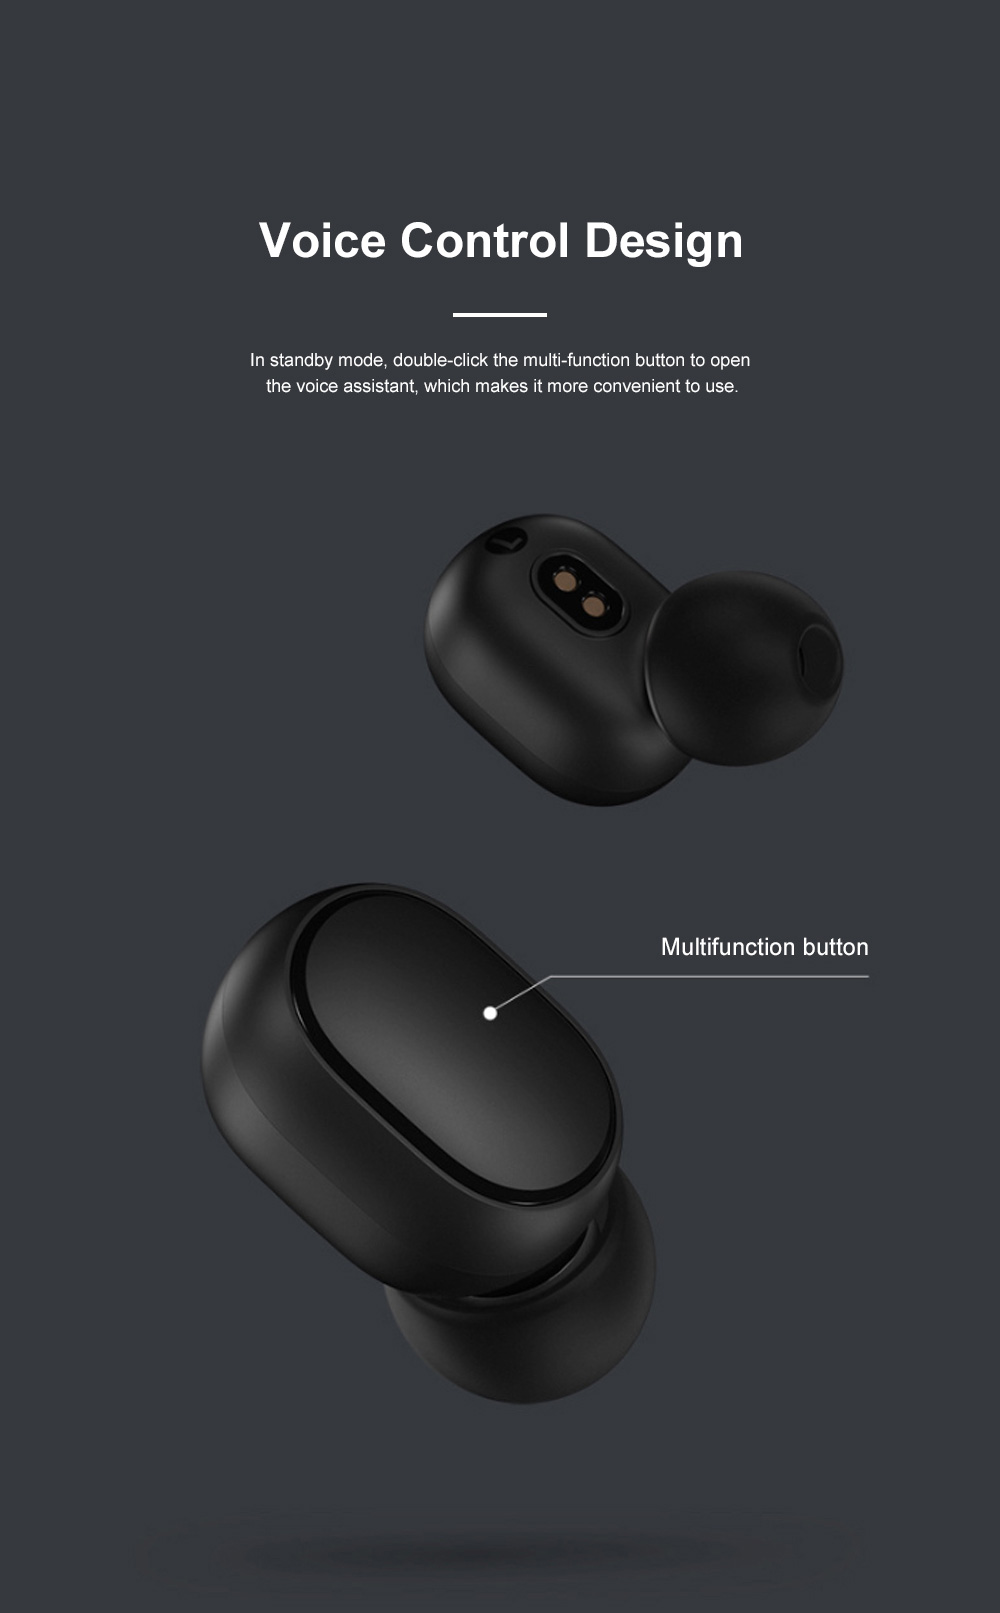 Redmi Airdots Bluetooth 5.0 Wireless Headset Fast Connecting Earphone with Charging Case and Voice Control 1